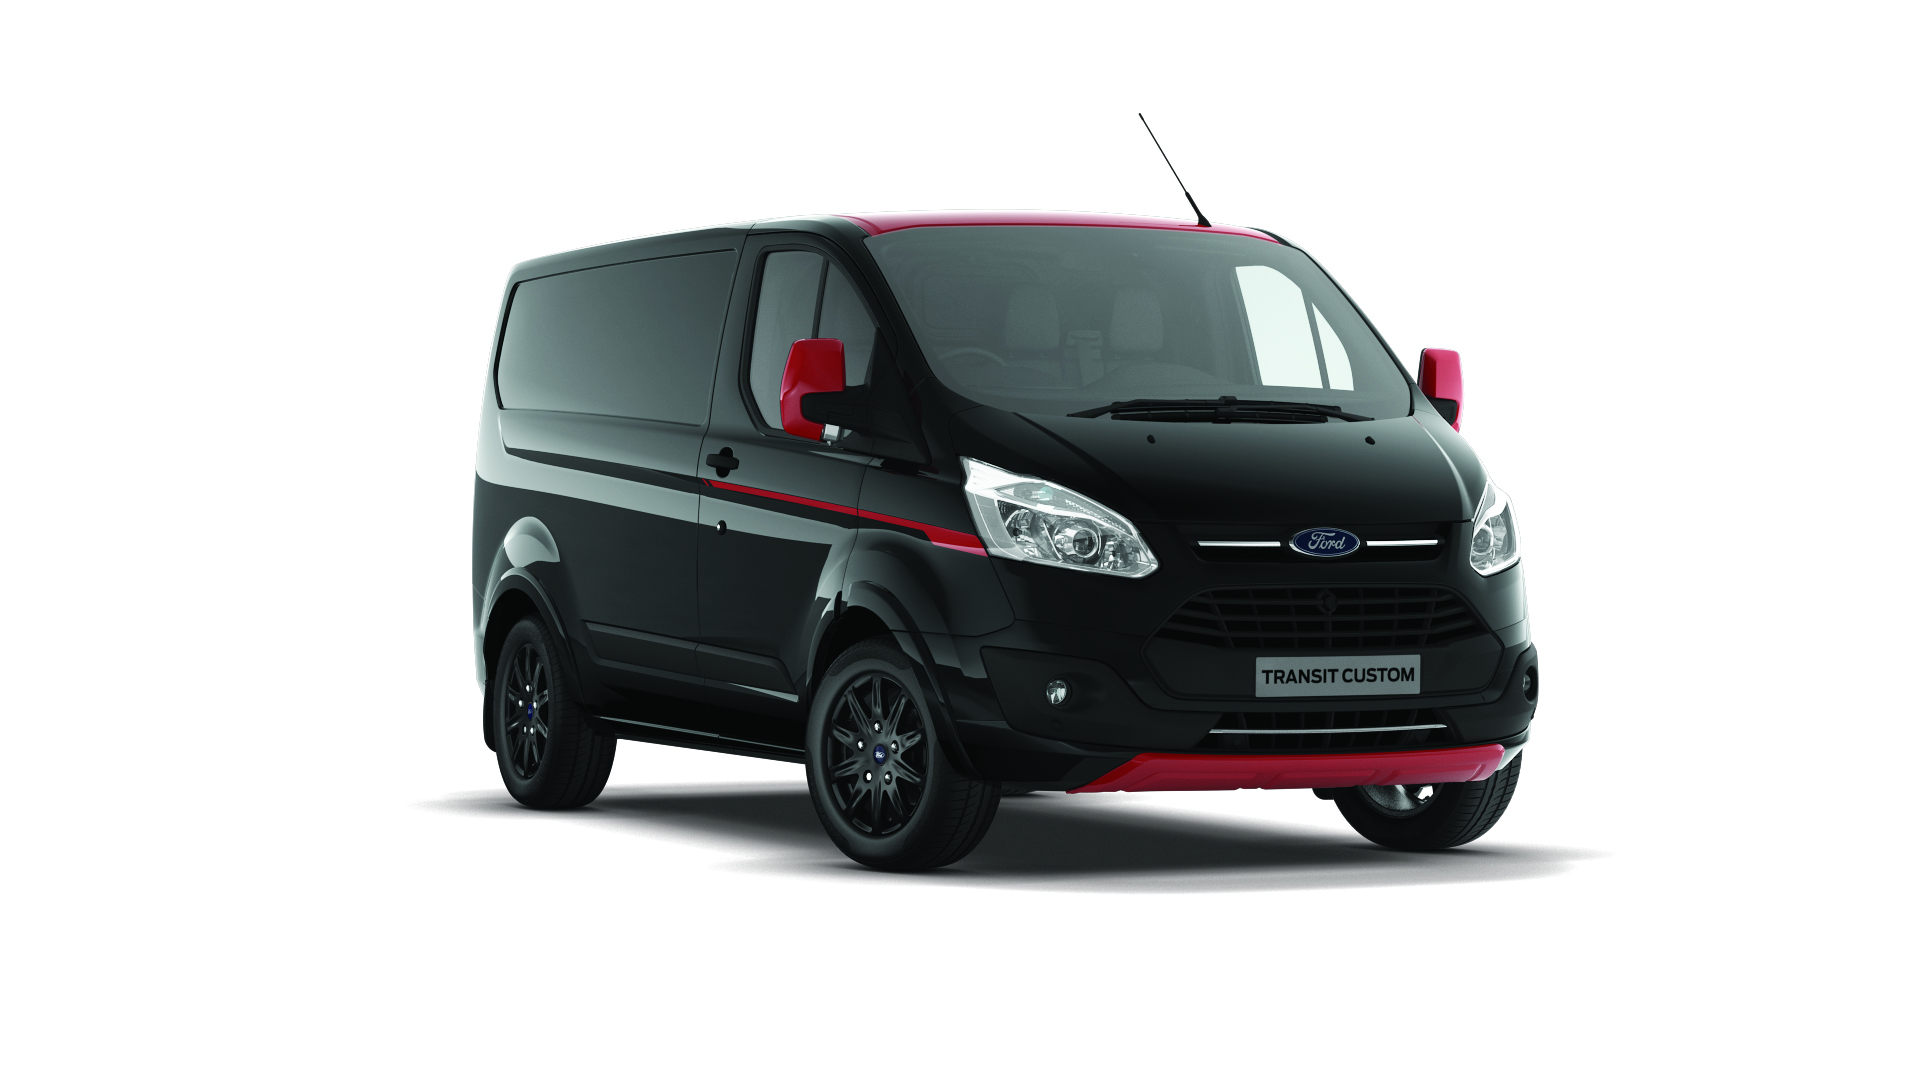 good quality lower price with fashion style A brand-new trend in van design